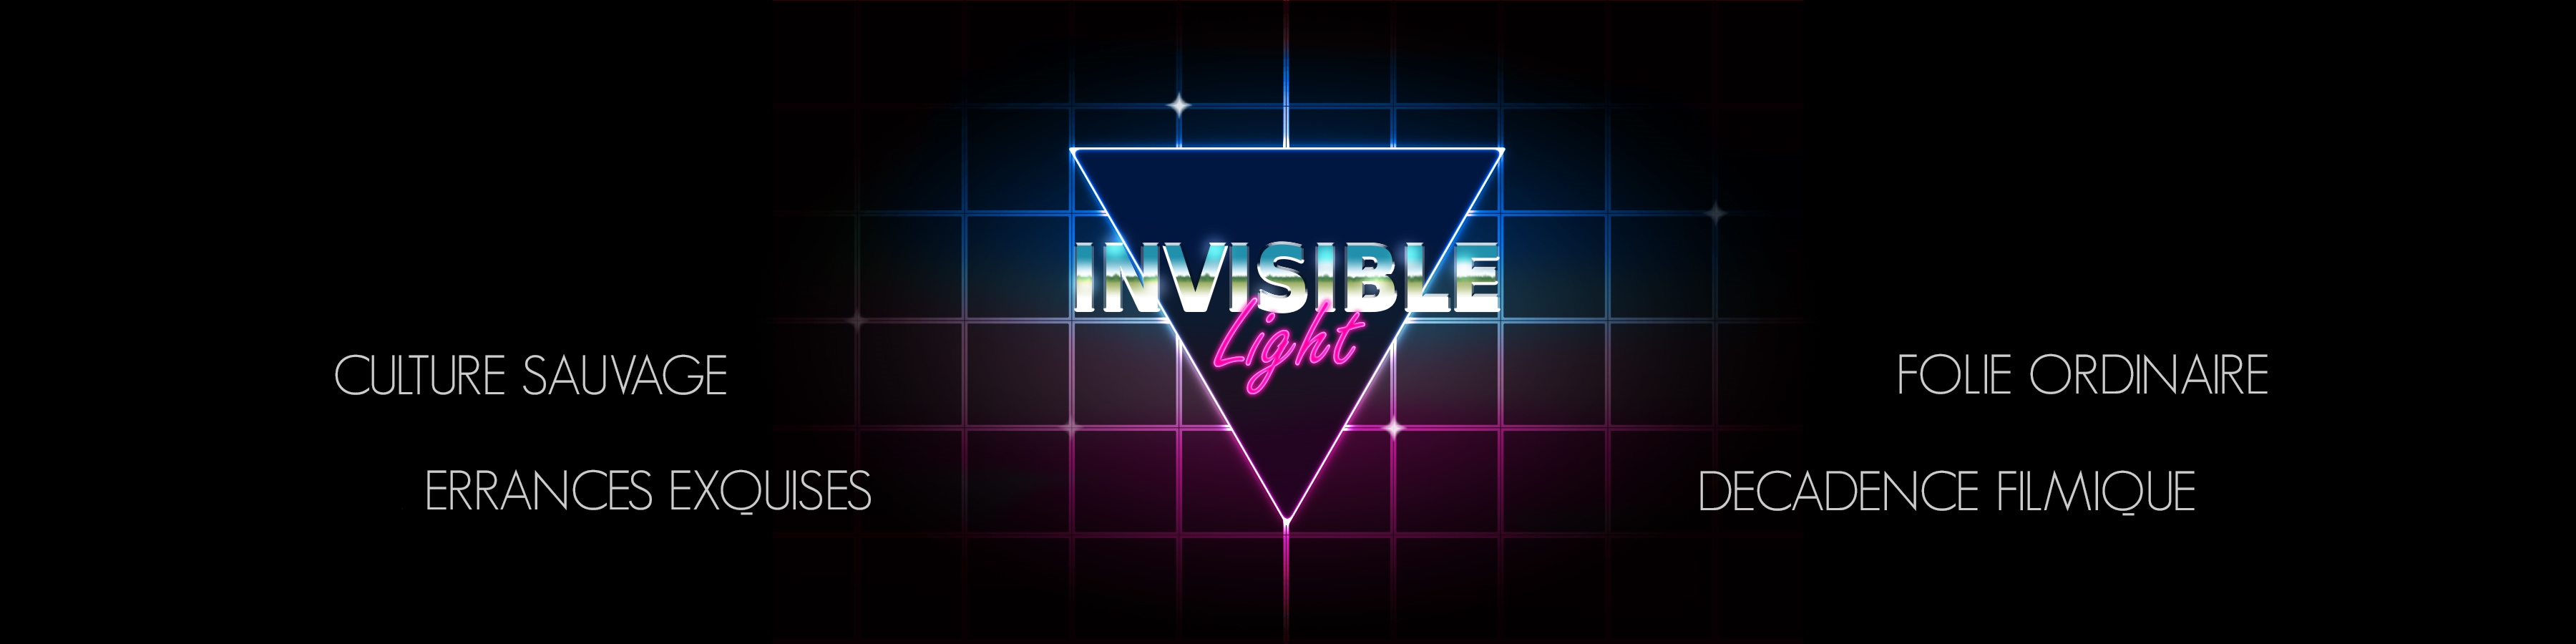 Invisible Lights